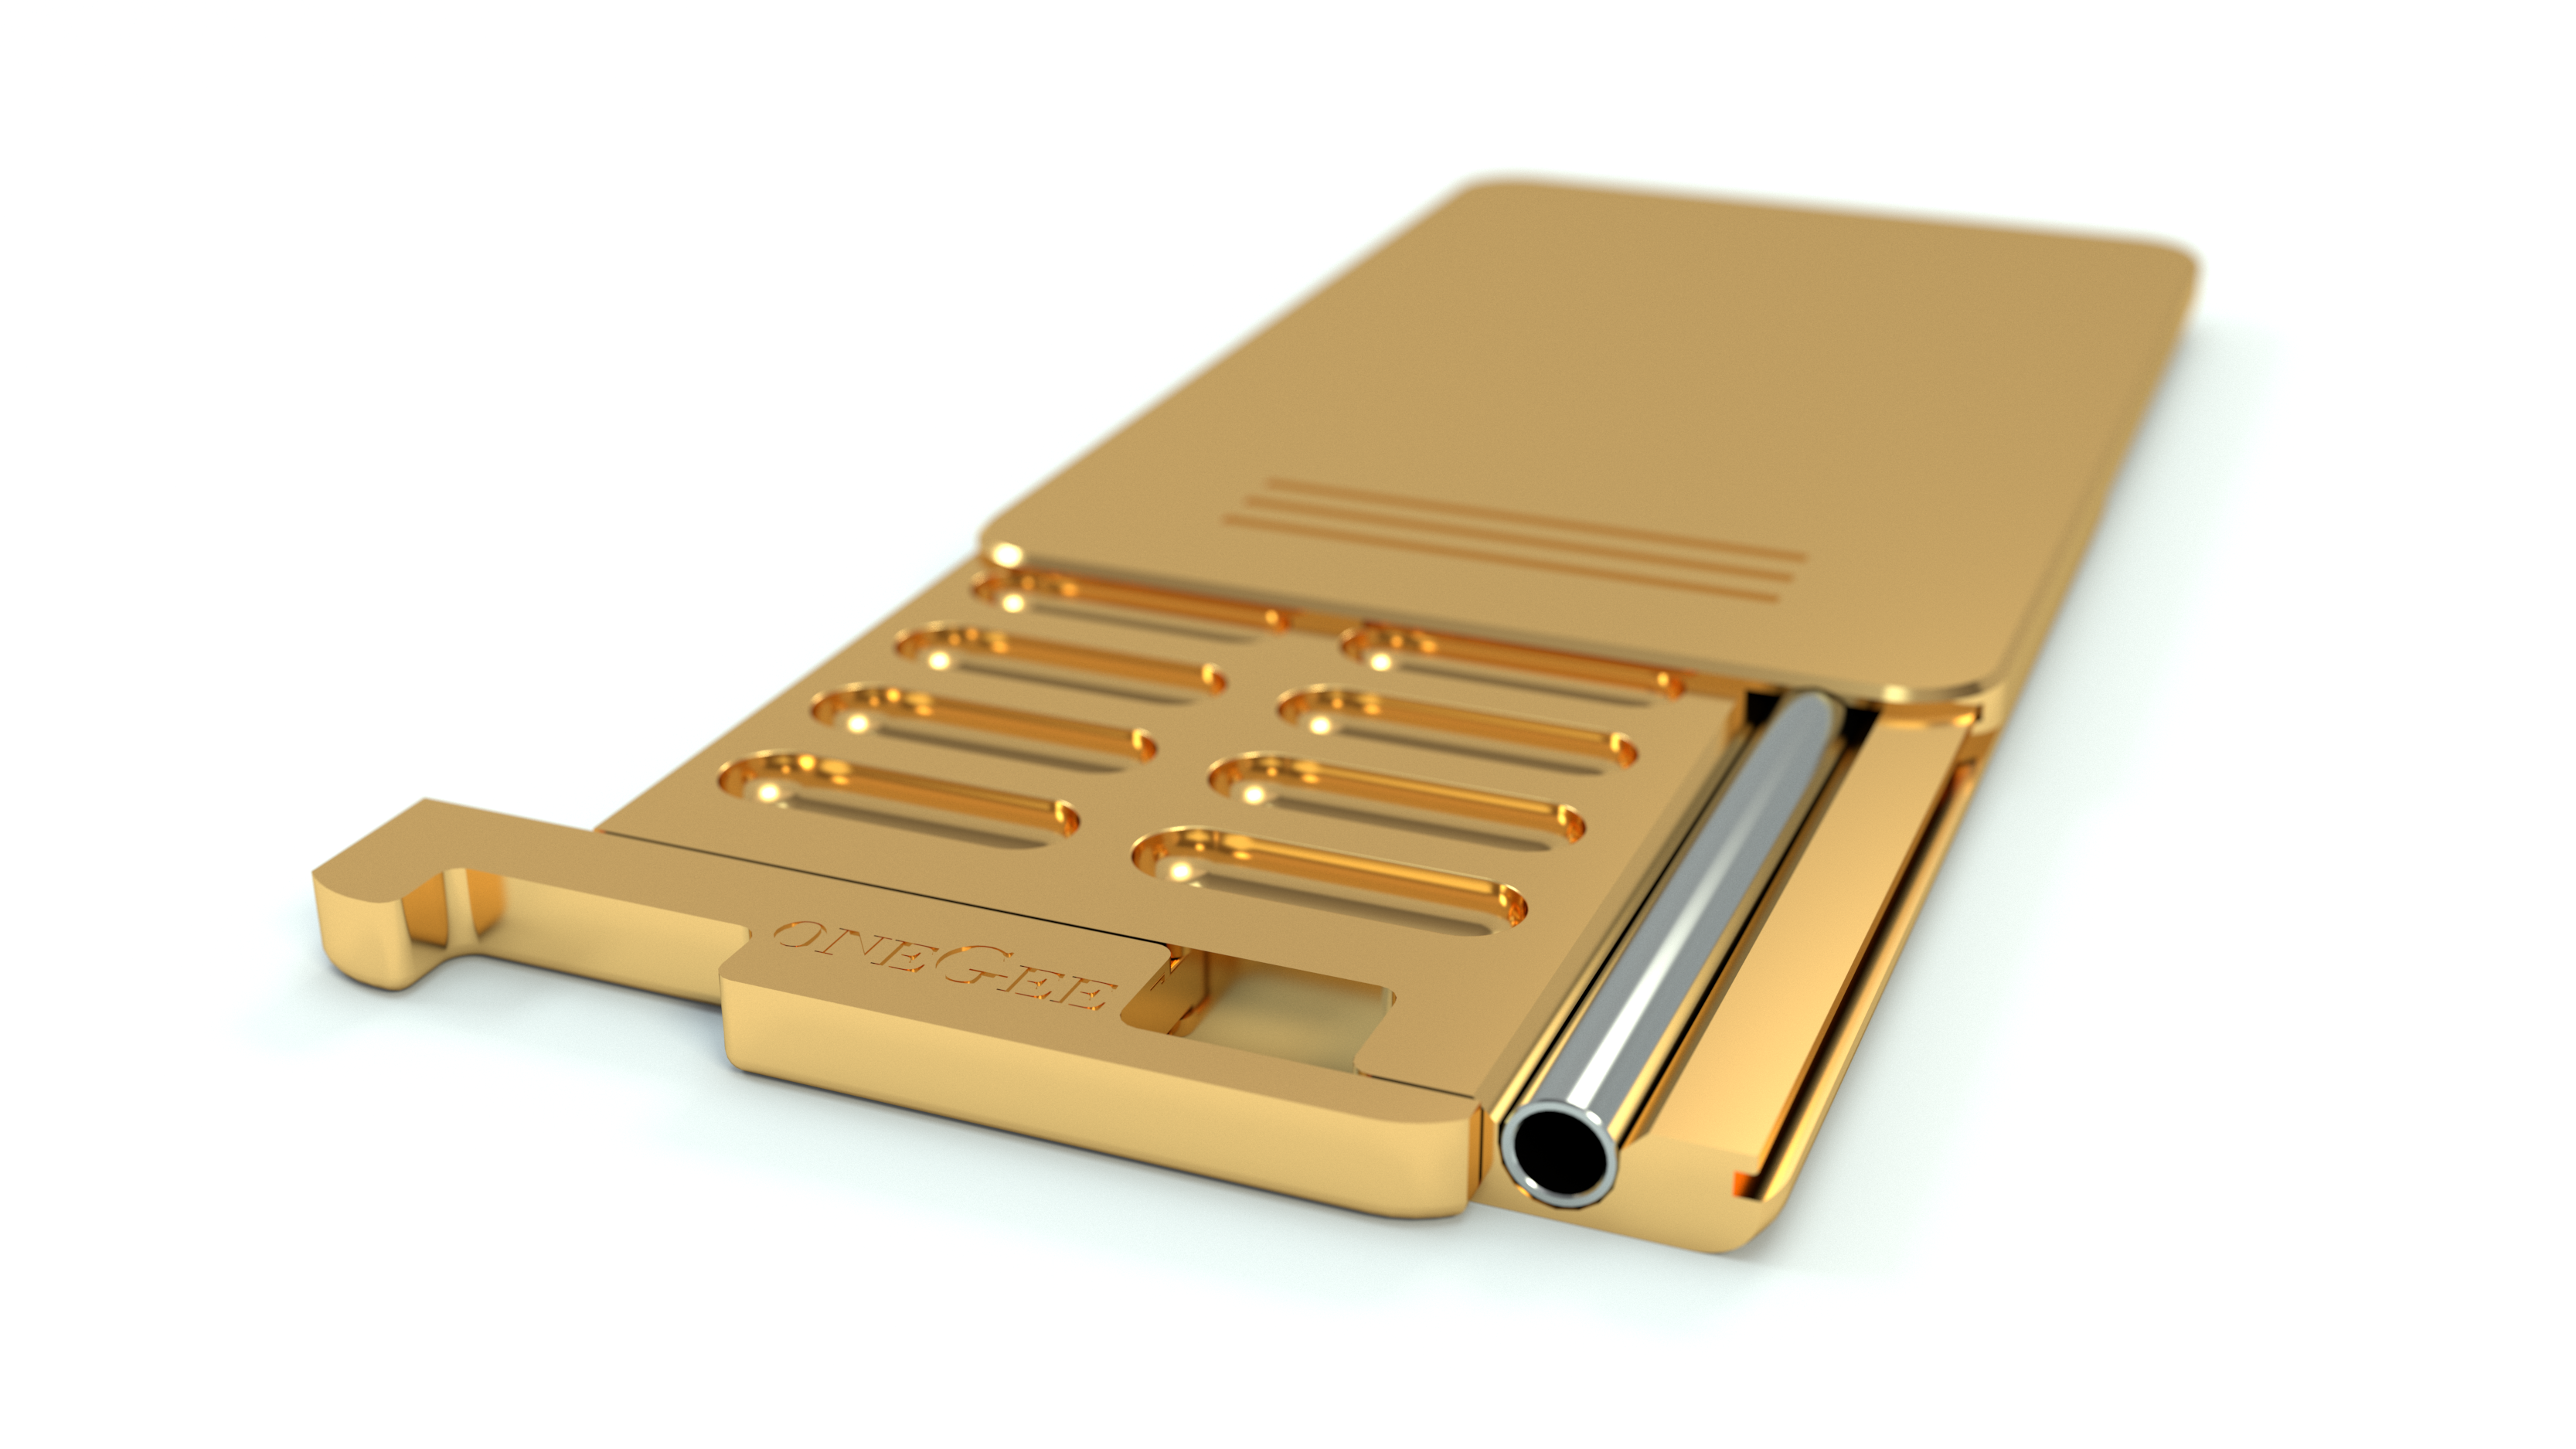 oneGee Snuffbox SecureBox Gold 24C